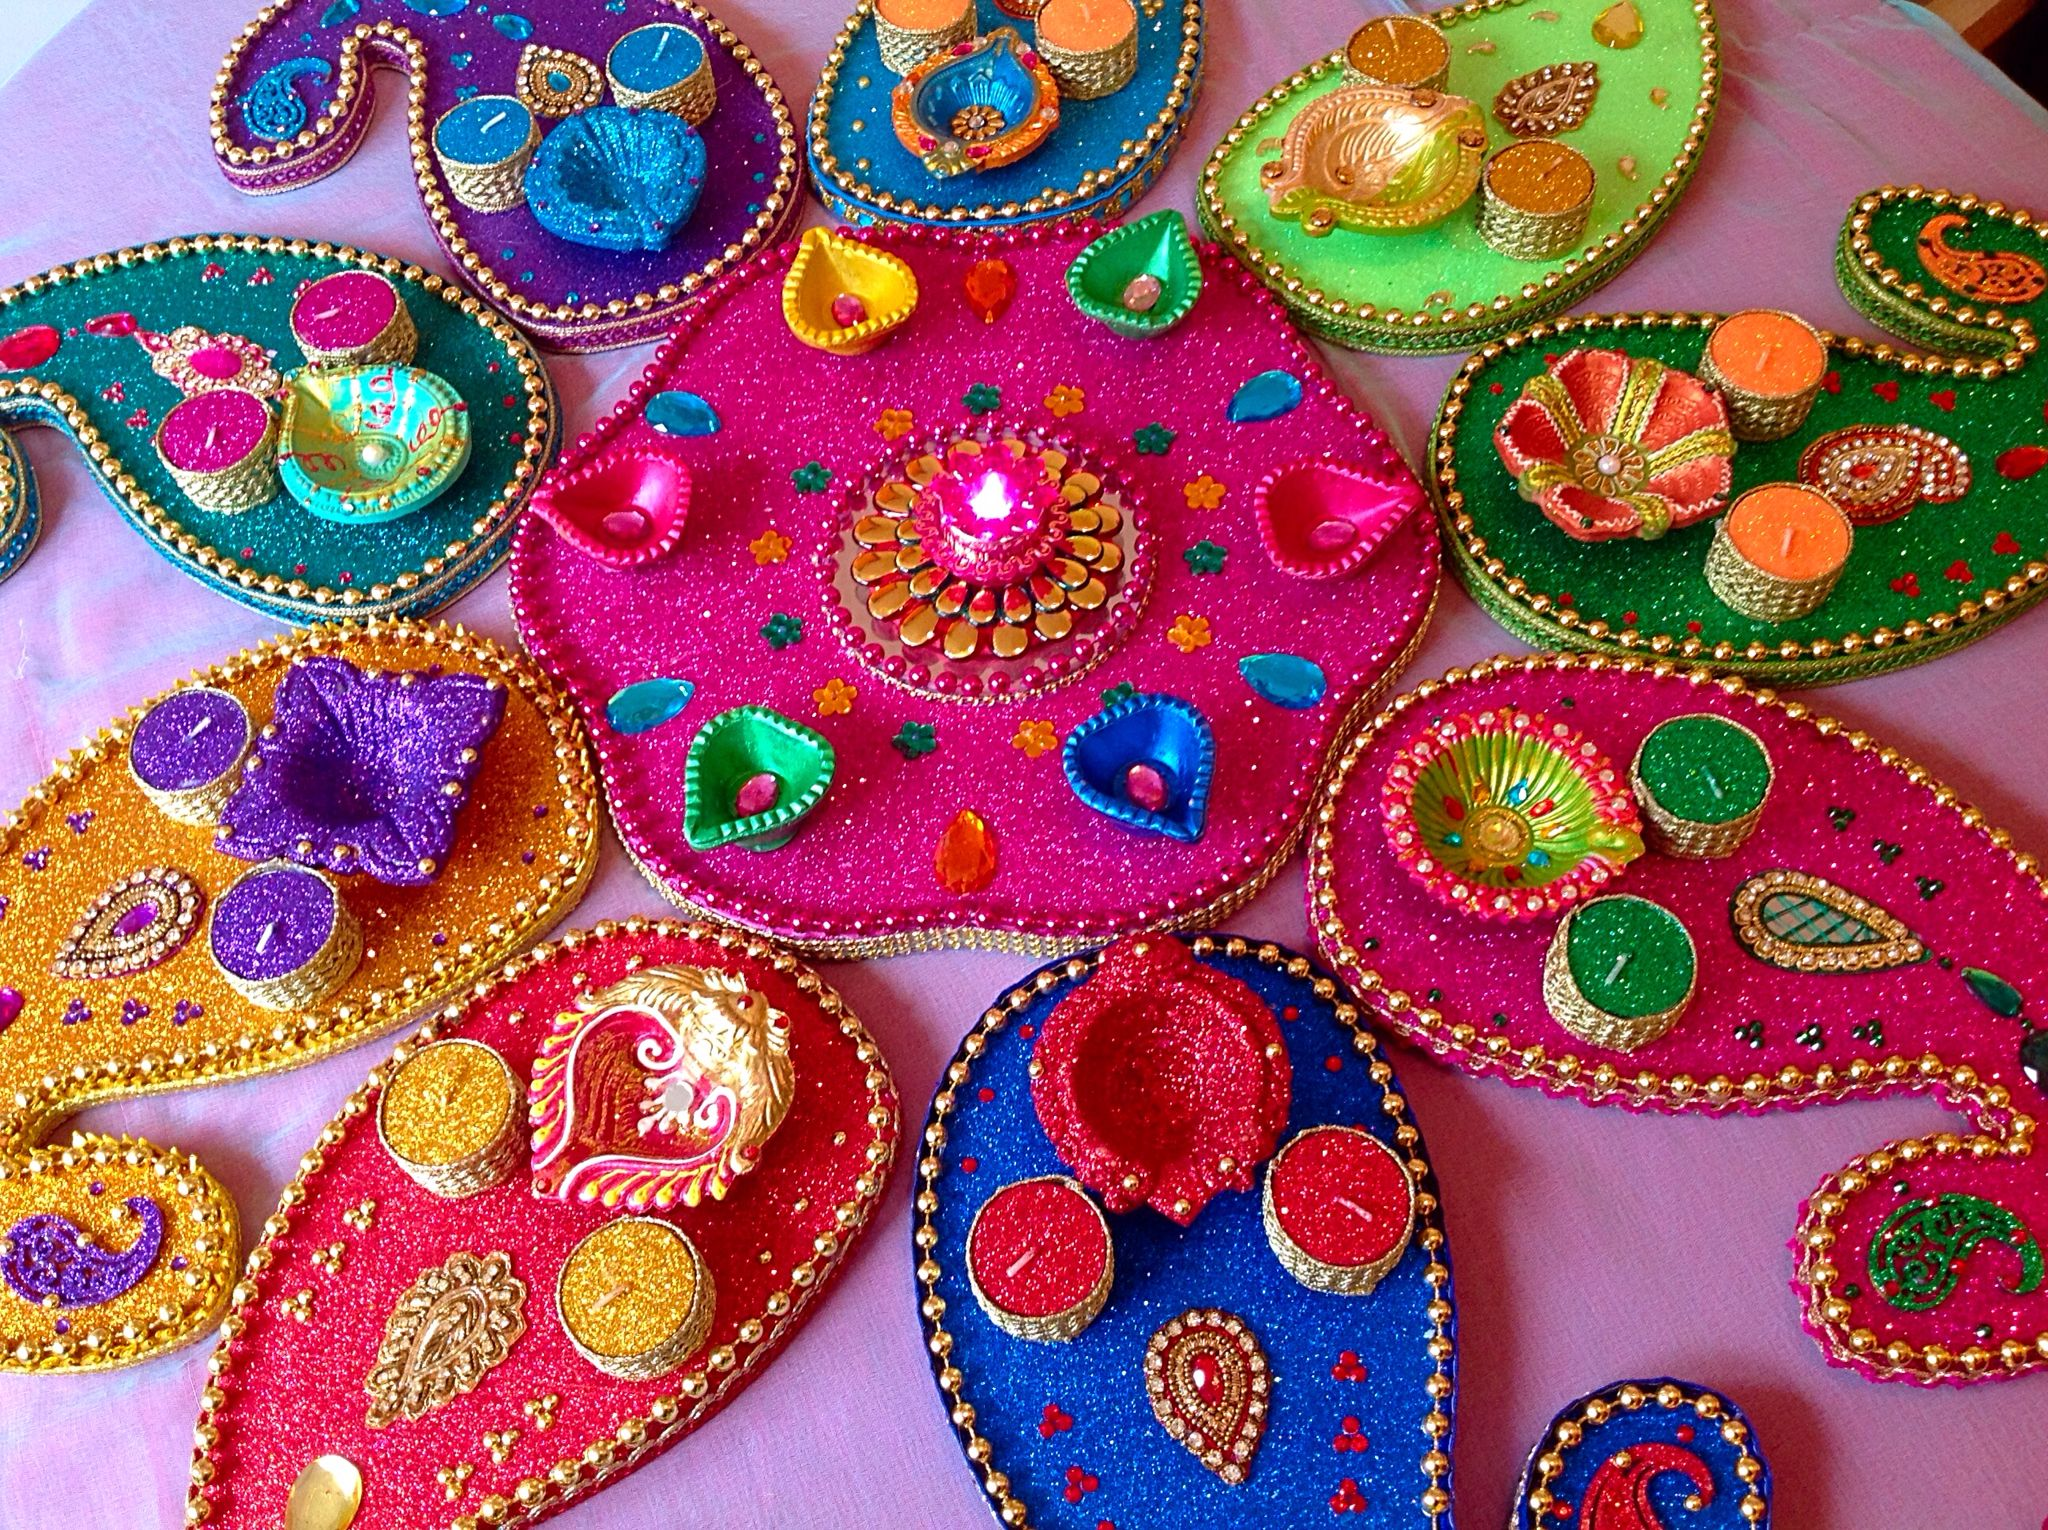 Mehndi Party Trays : Beautiful multi coloured mehndi plates see my facebook page